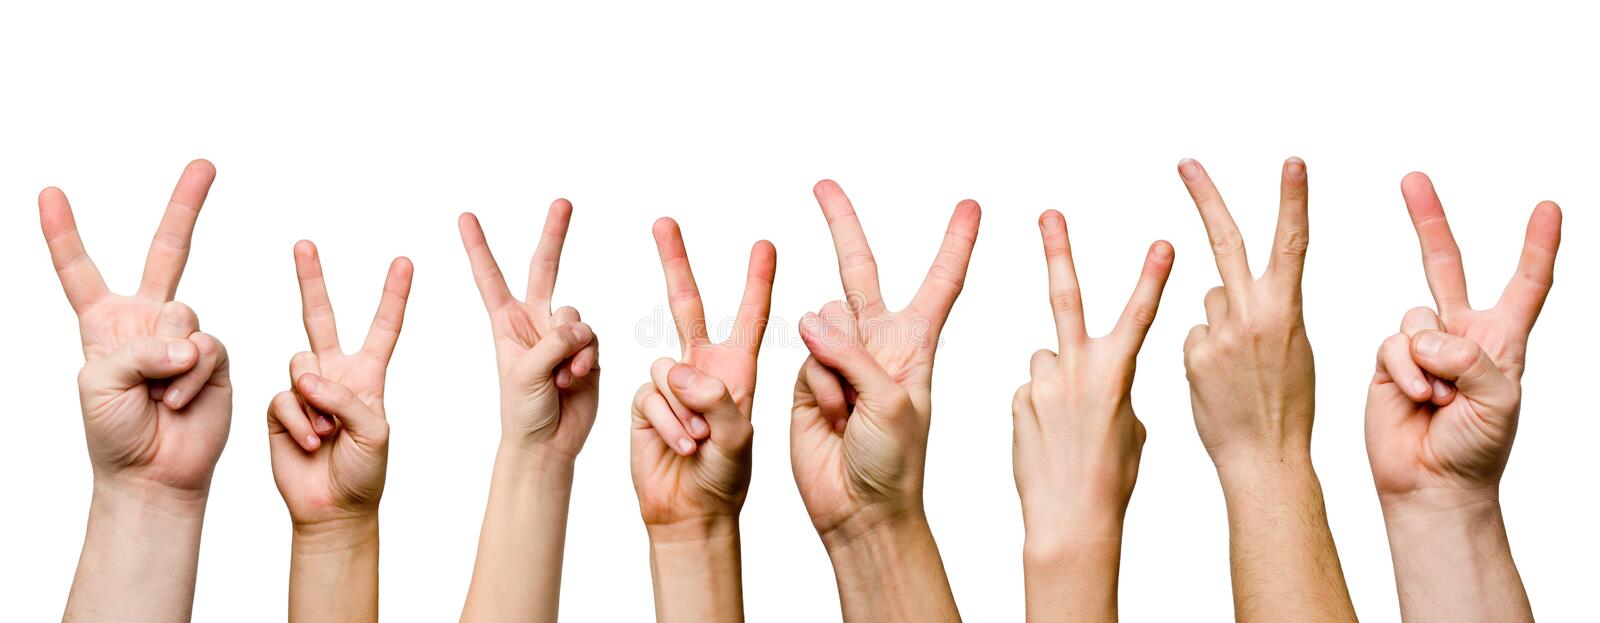 Victory gestures panorama royalty free stock photo